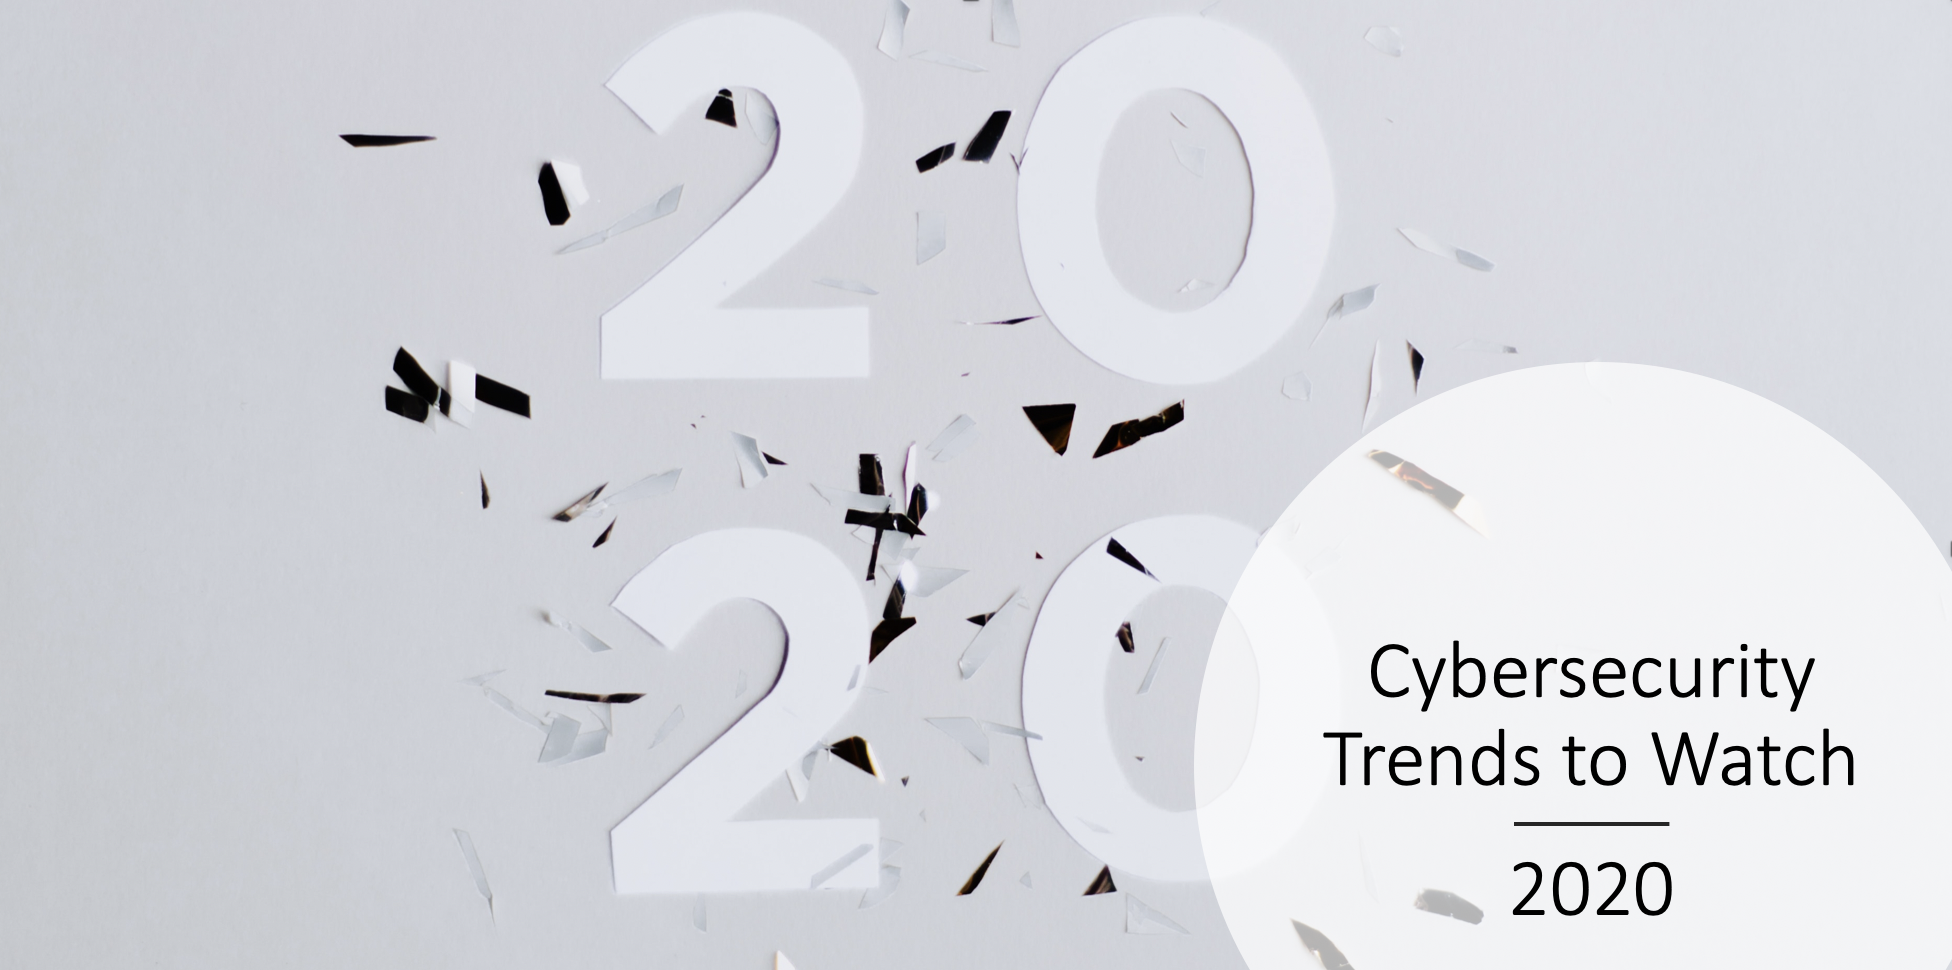 Cybersecurity Trends to Watch in 2020: https://www.enzoic.com/cybersecurity-trends-2020/